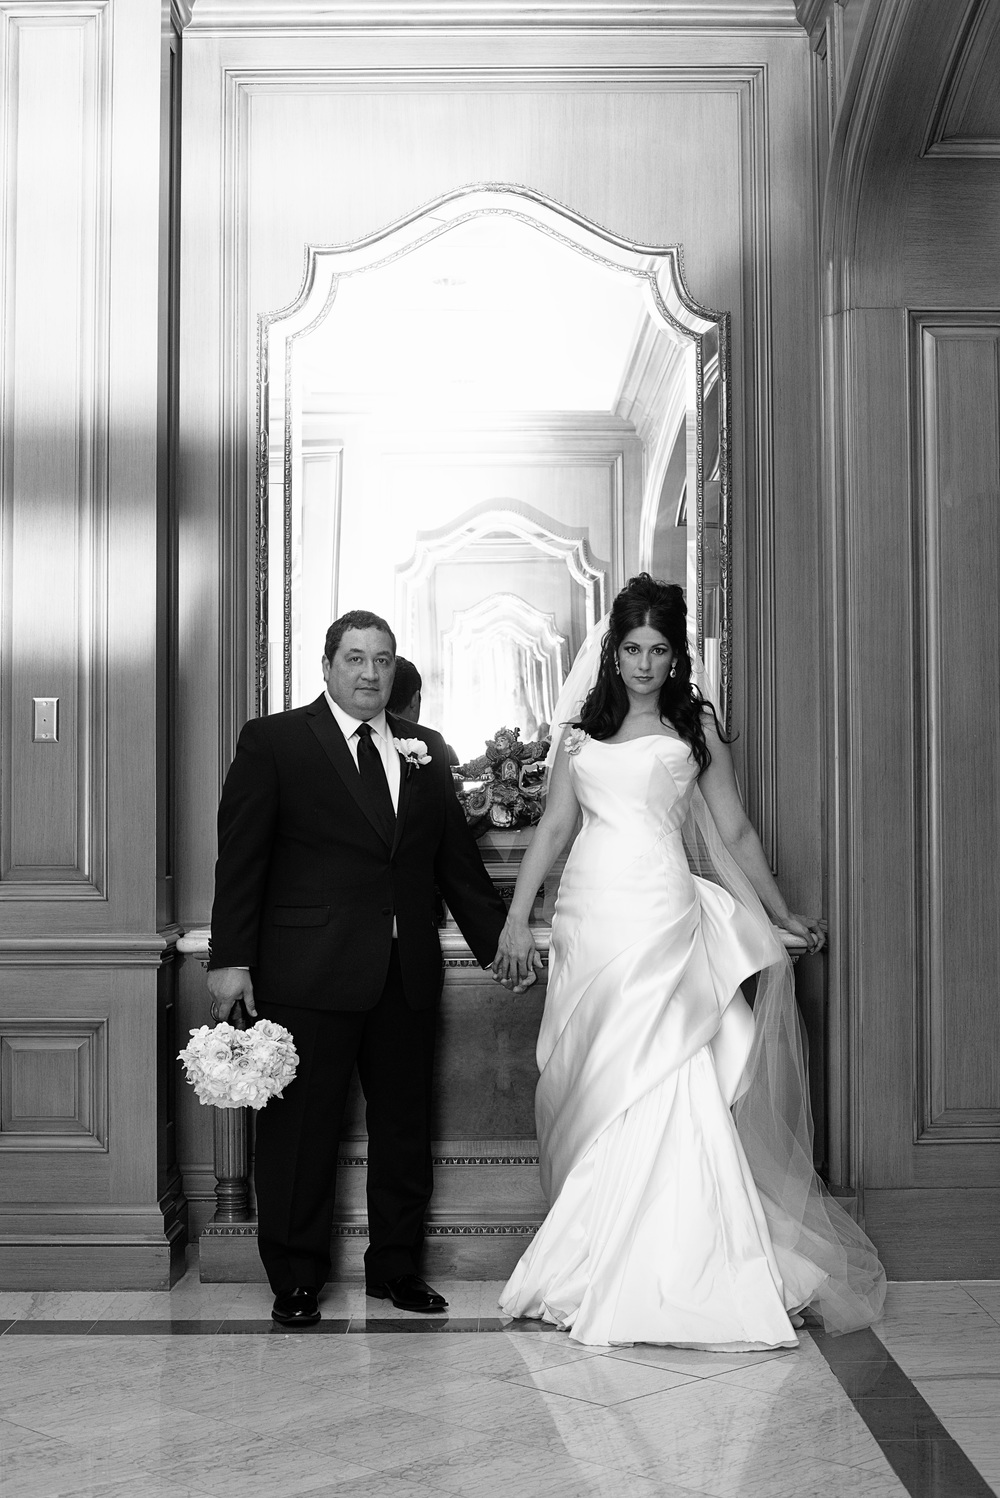 Andrea Eppolito & Tony Fisher: Formal Wedding Portrait. An Intimate Wedding at Four Seasons Las Vegas.